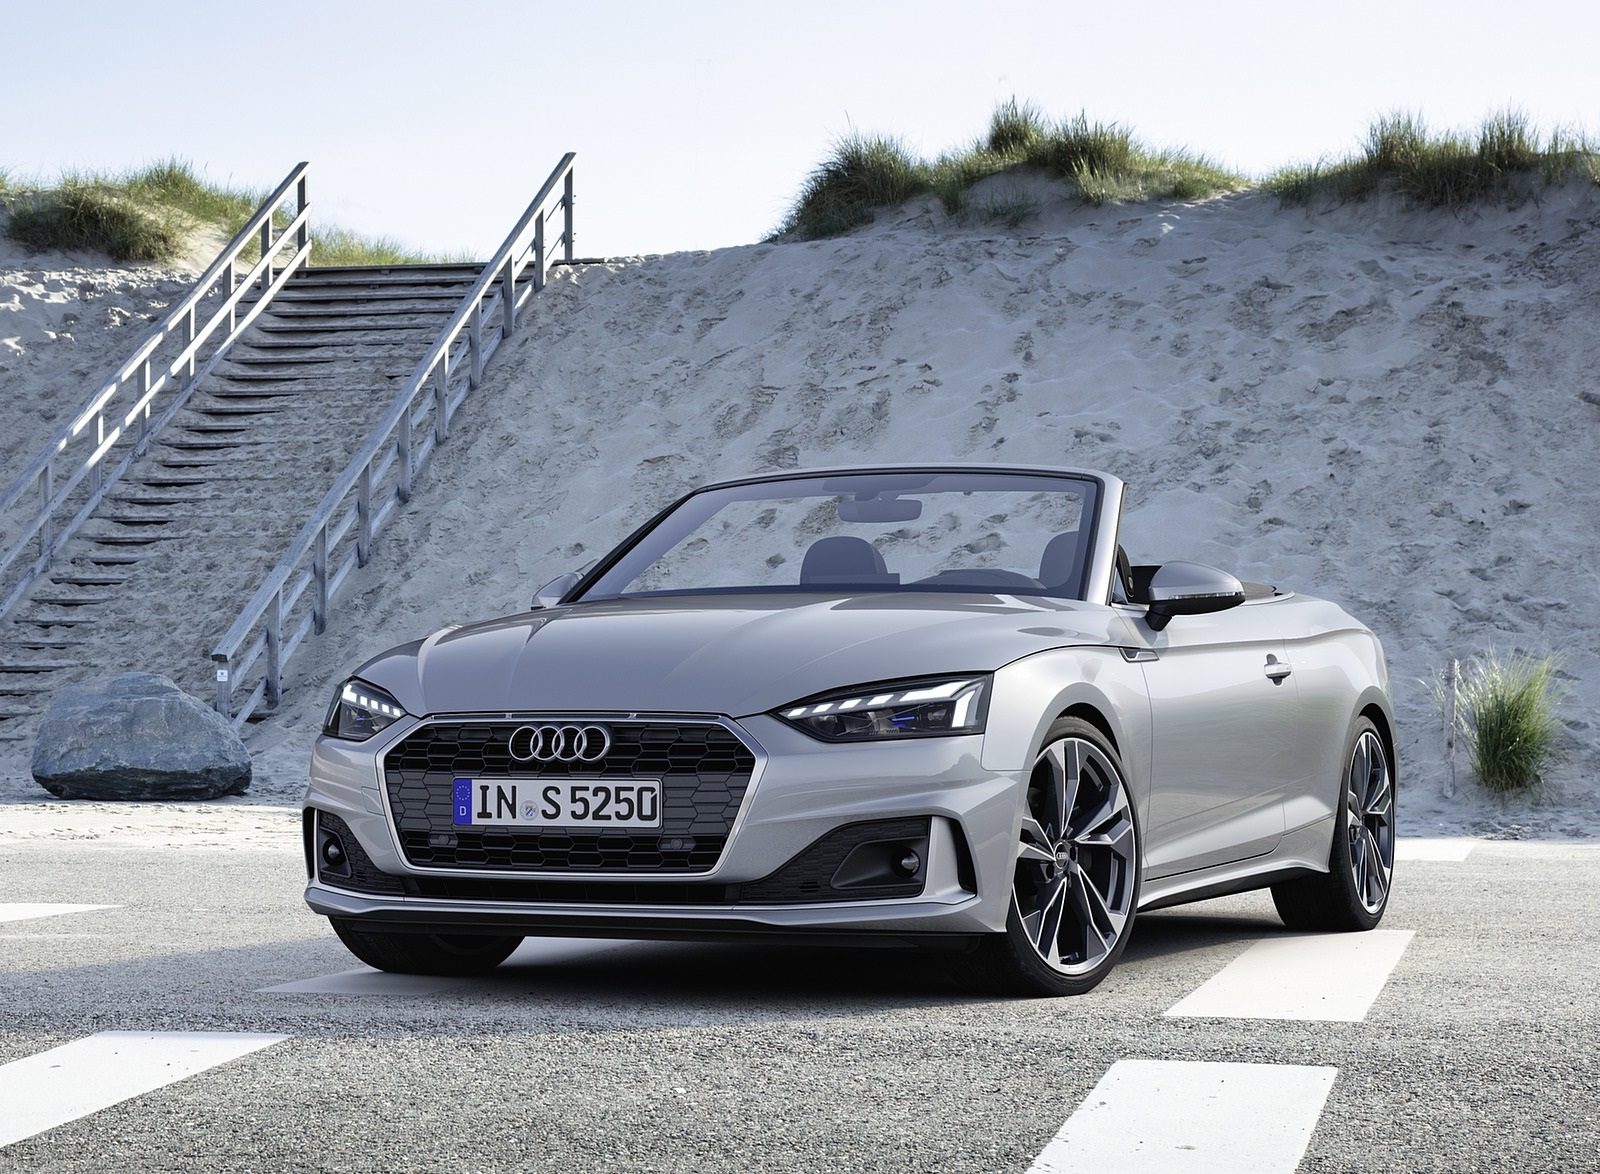 2020 Audi A5 Cabriolet (Color: Florett Silver) Front Three-Quarter Wallpapers (7)